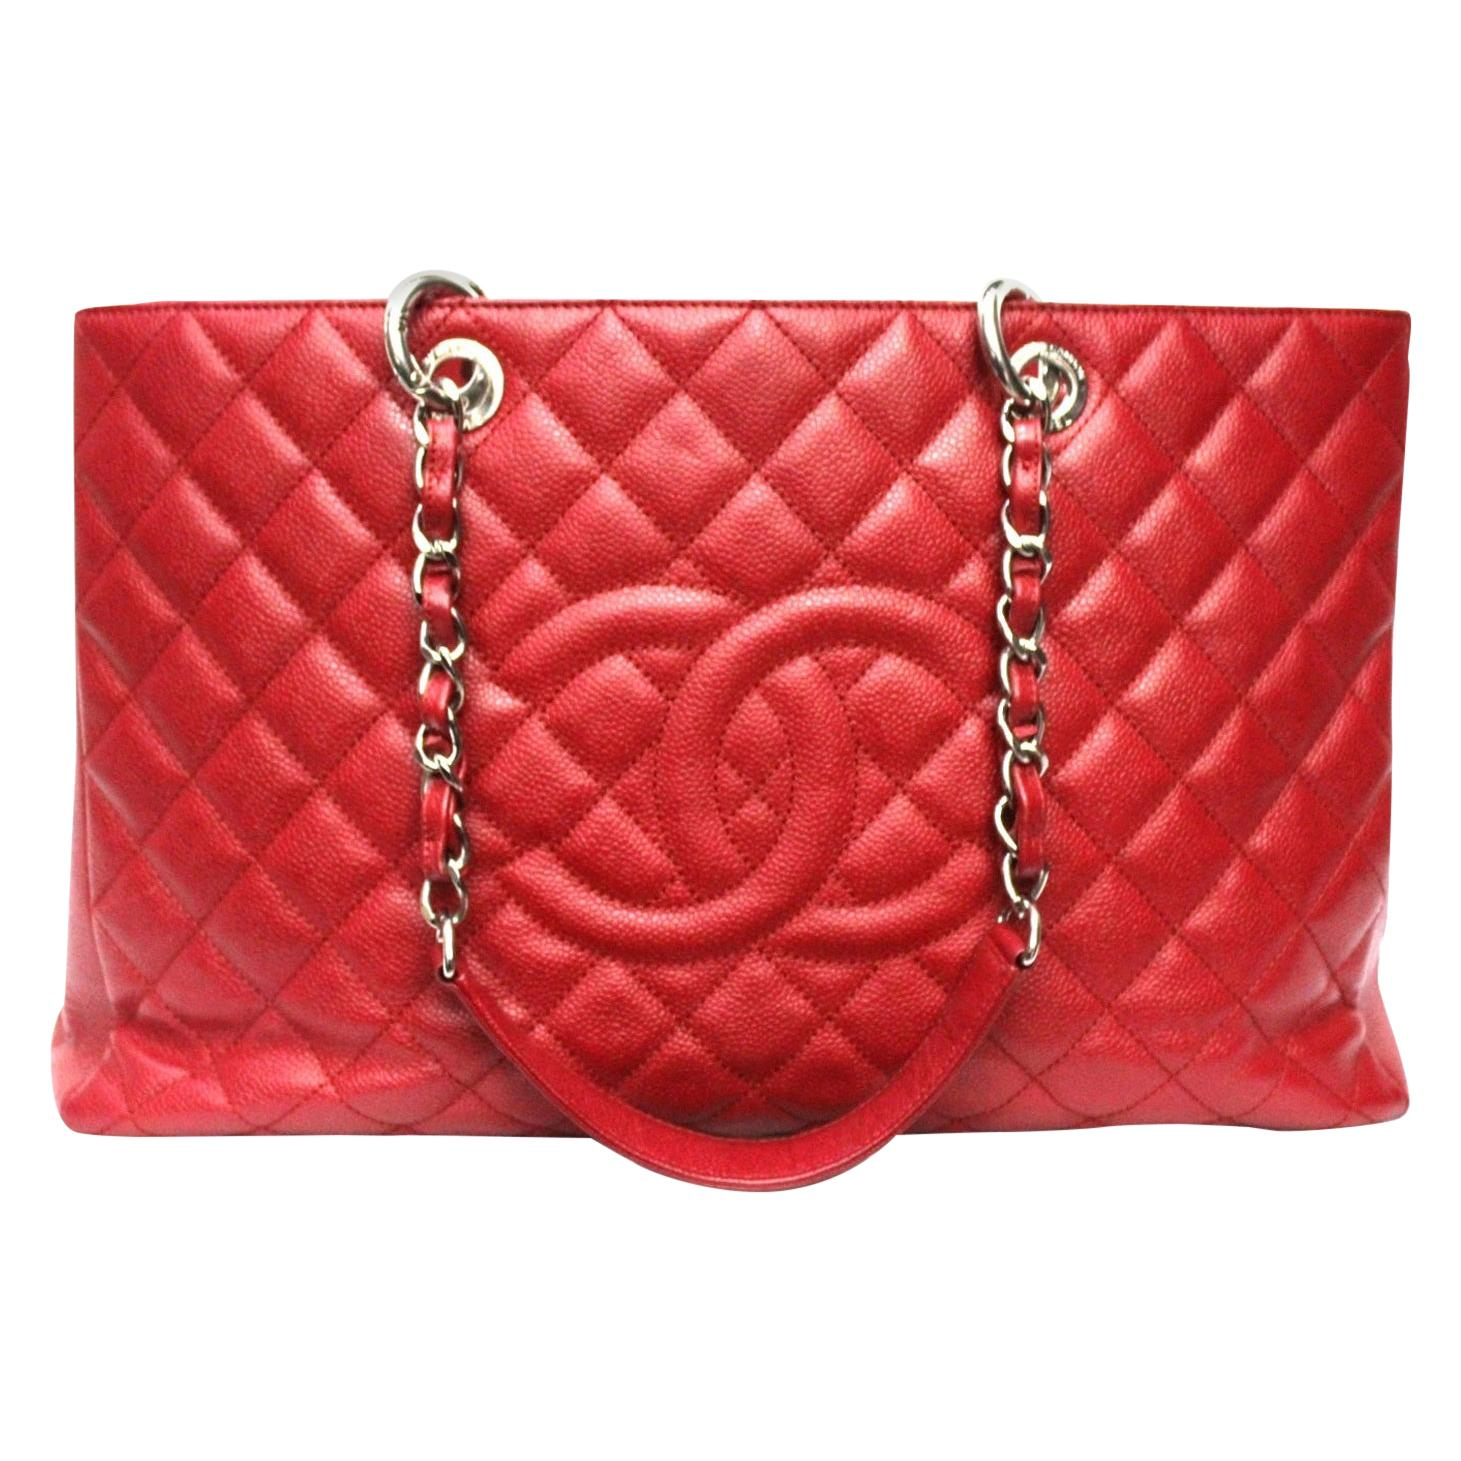 2012 Chanel Red Leather GST Bag